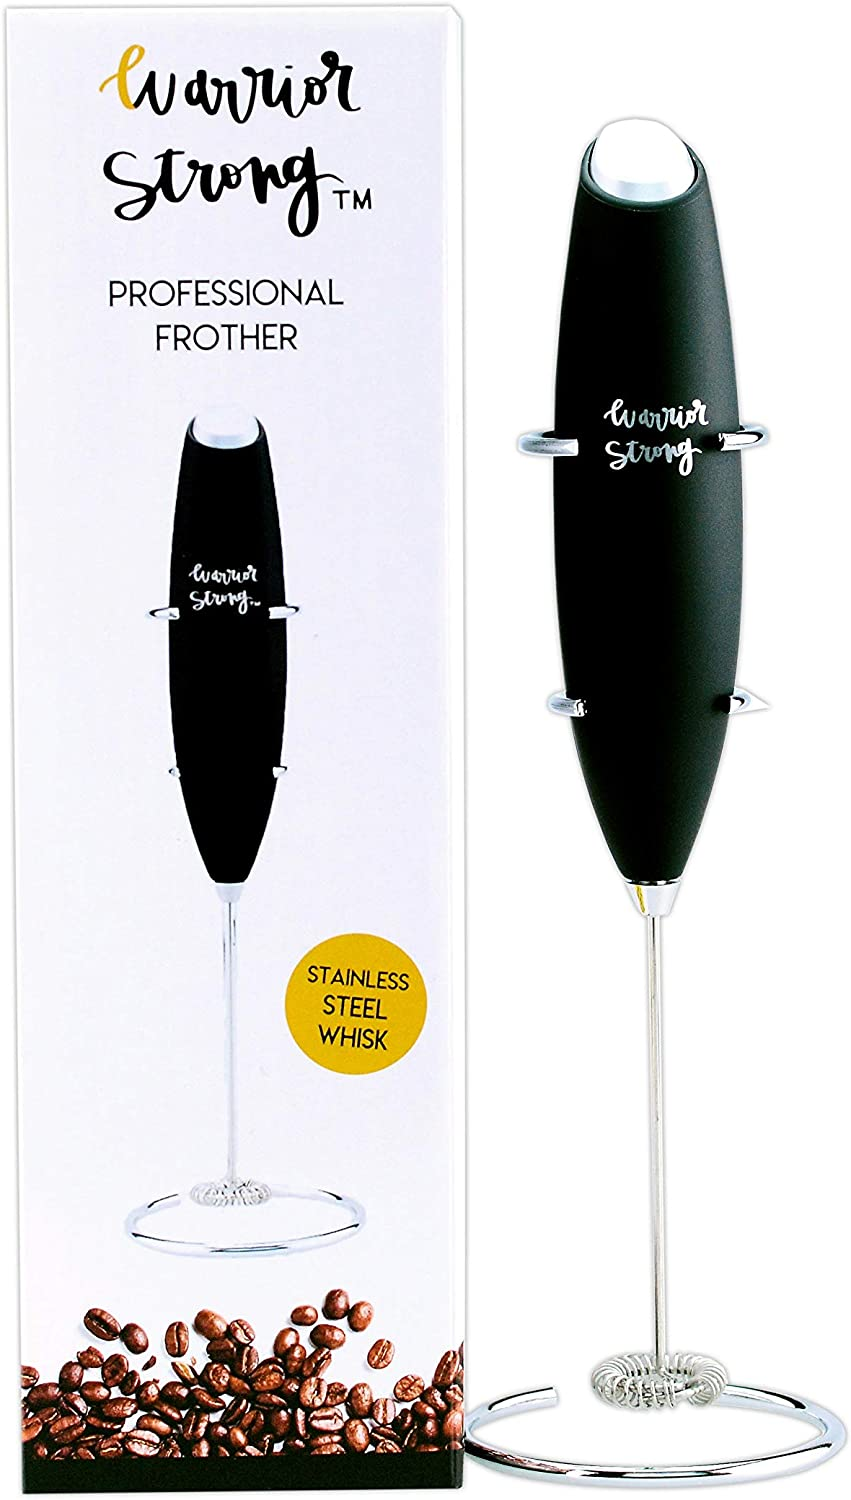 Premium Coffee and Collagen Frother and Stand by Top Rated Warrior Strong Wellness Handheld Battery Operated Electric Foam Maker For Drinks, Tea, Latte, Cappuccino, Hot Cocoa and Stirring Collagen Powder Into Coffee, Durable Drink Mixer With Stainless Steel Whisk, Stainless Steel Stand Included